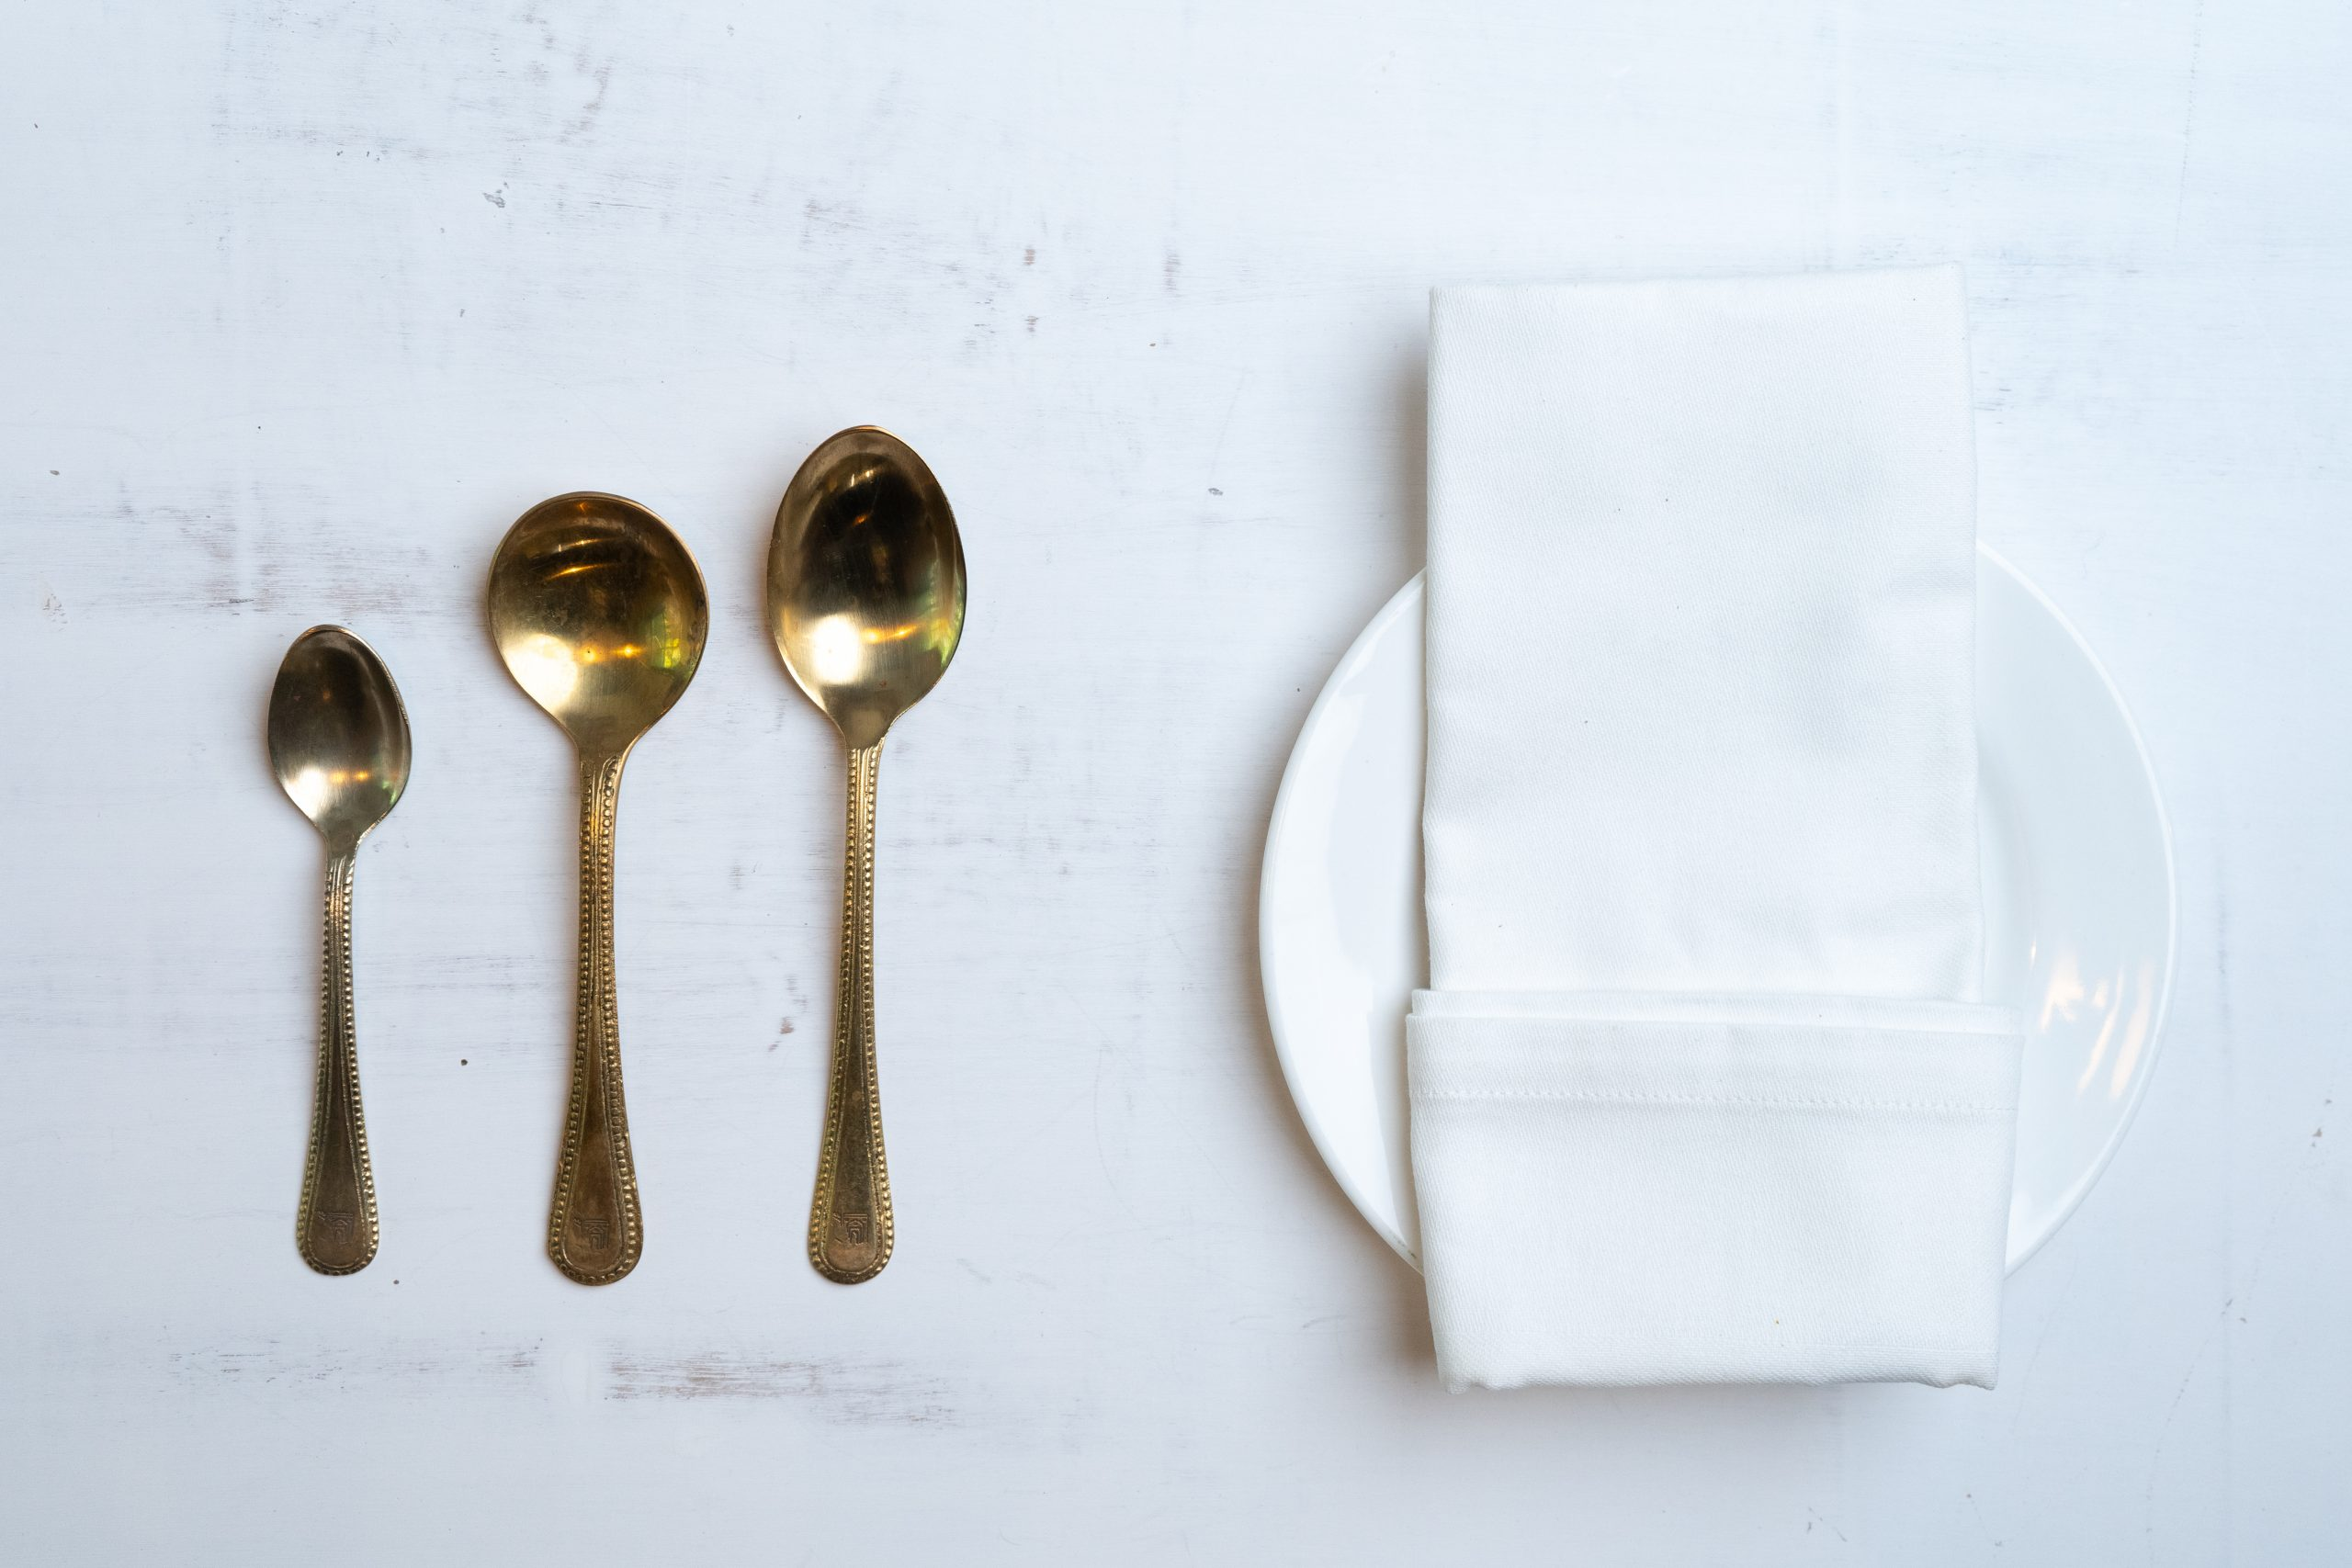 Plate and spoons